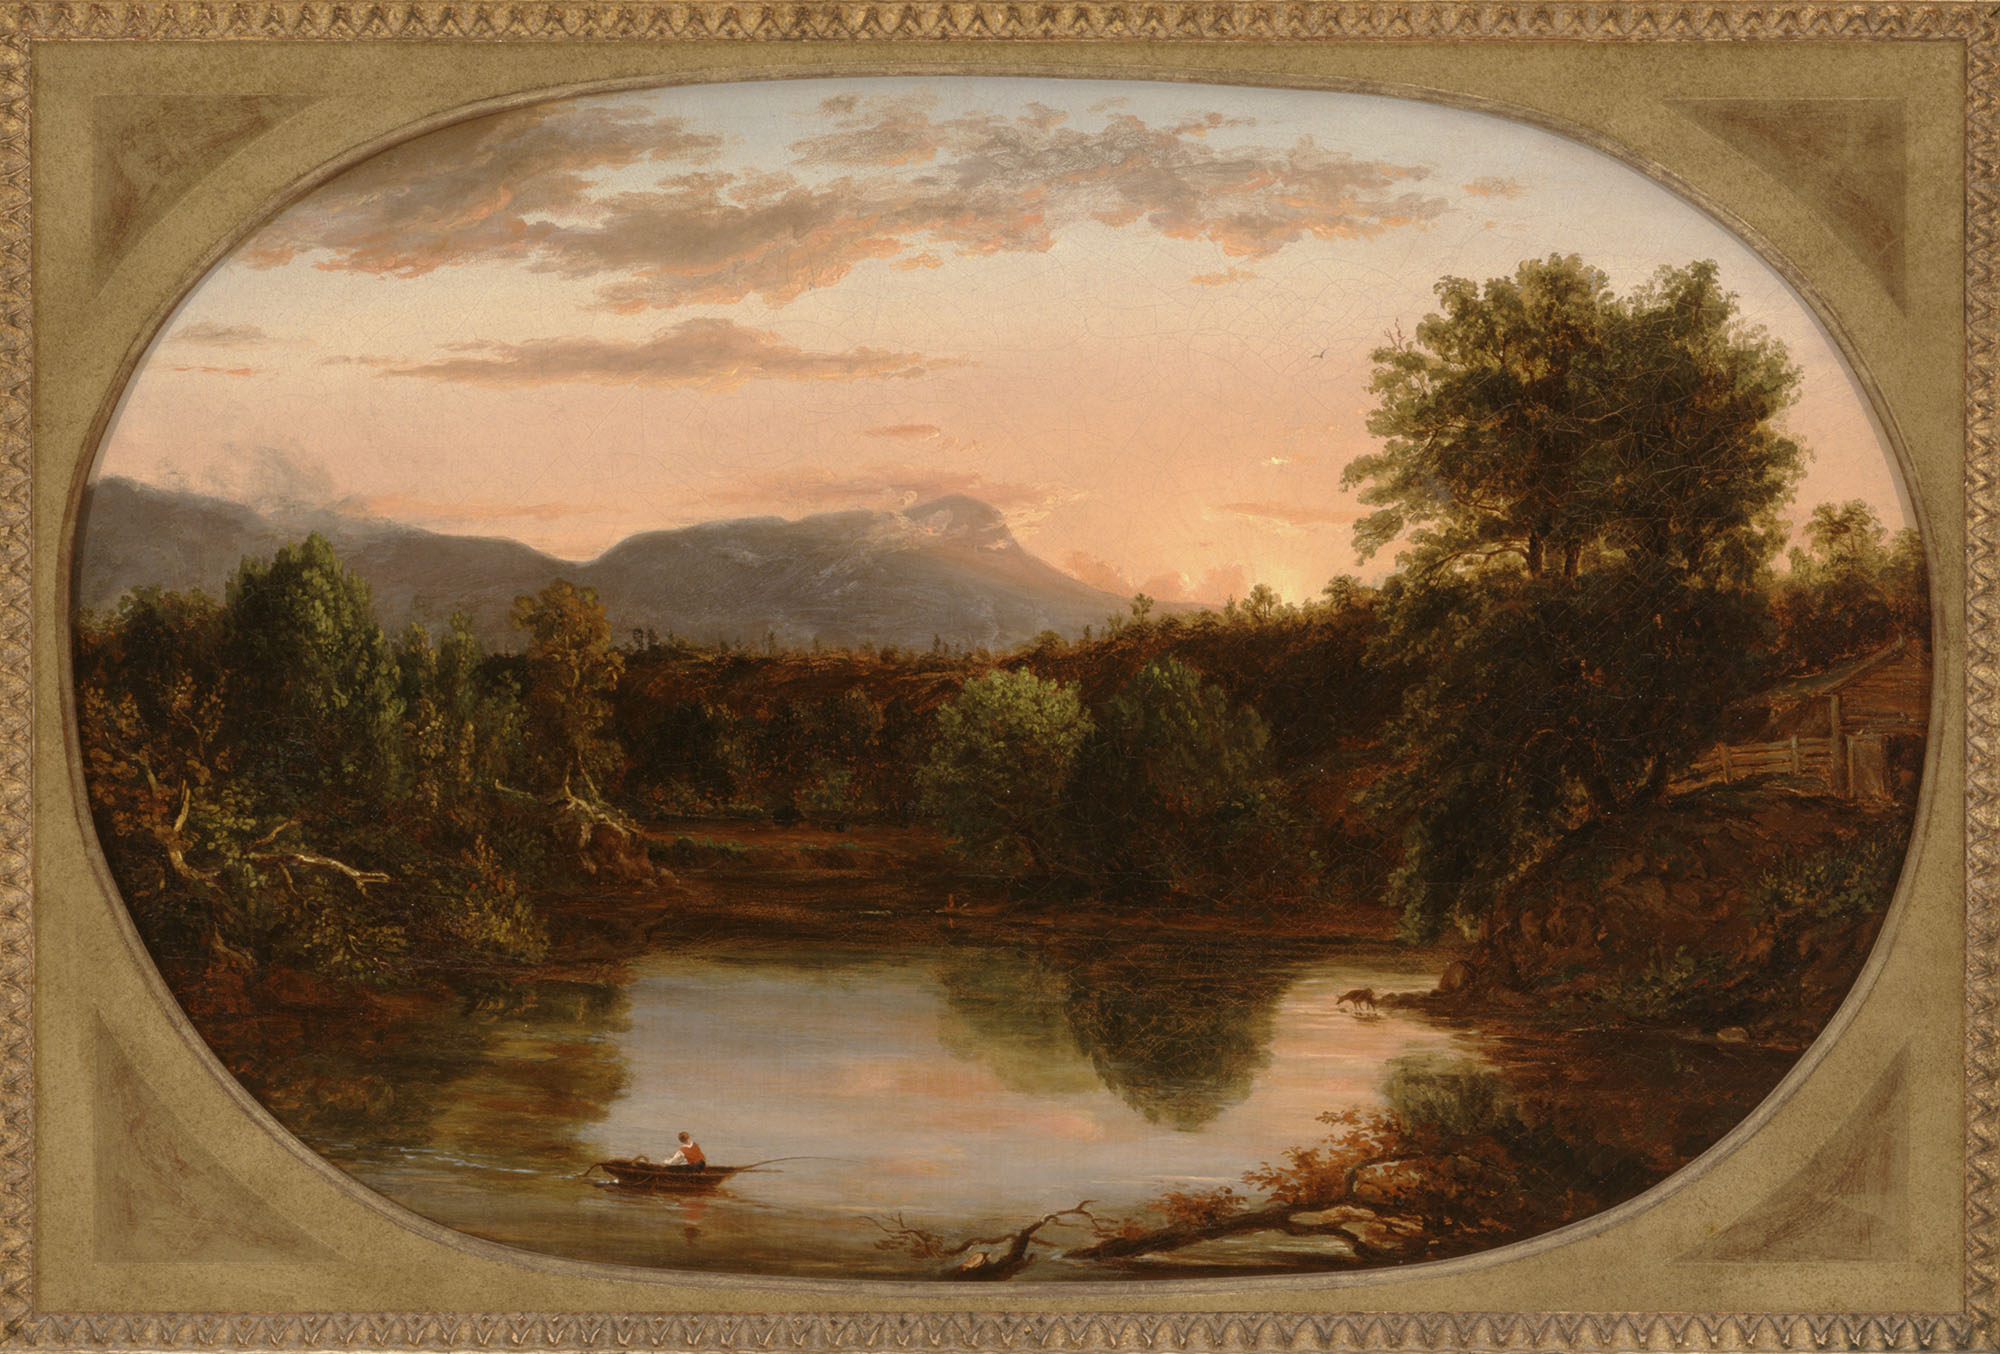 thomas cole essay Paintings of the day: the course of empire by thomas cole posted on april 21, 2010 by justin ames 11 comments before proceeding, permit me to suggest clicking on the pictures below, so that in their enlarged state, they may be more thoroughly appreciated.